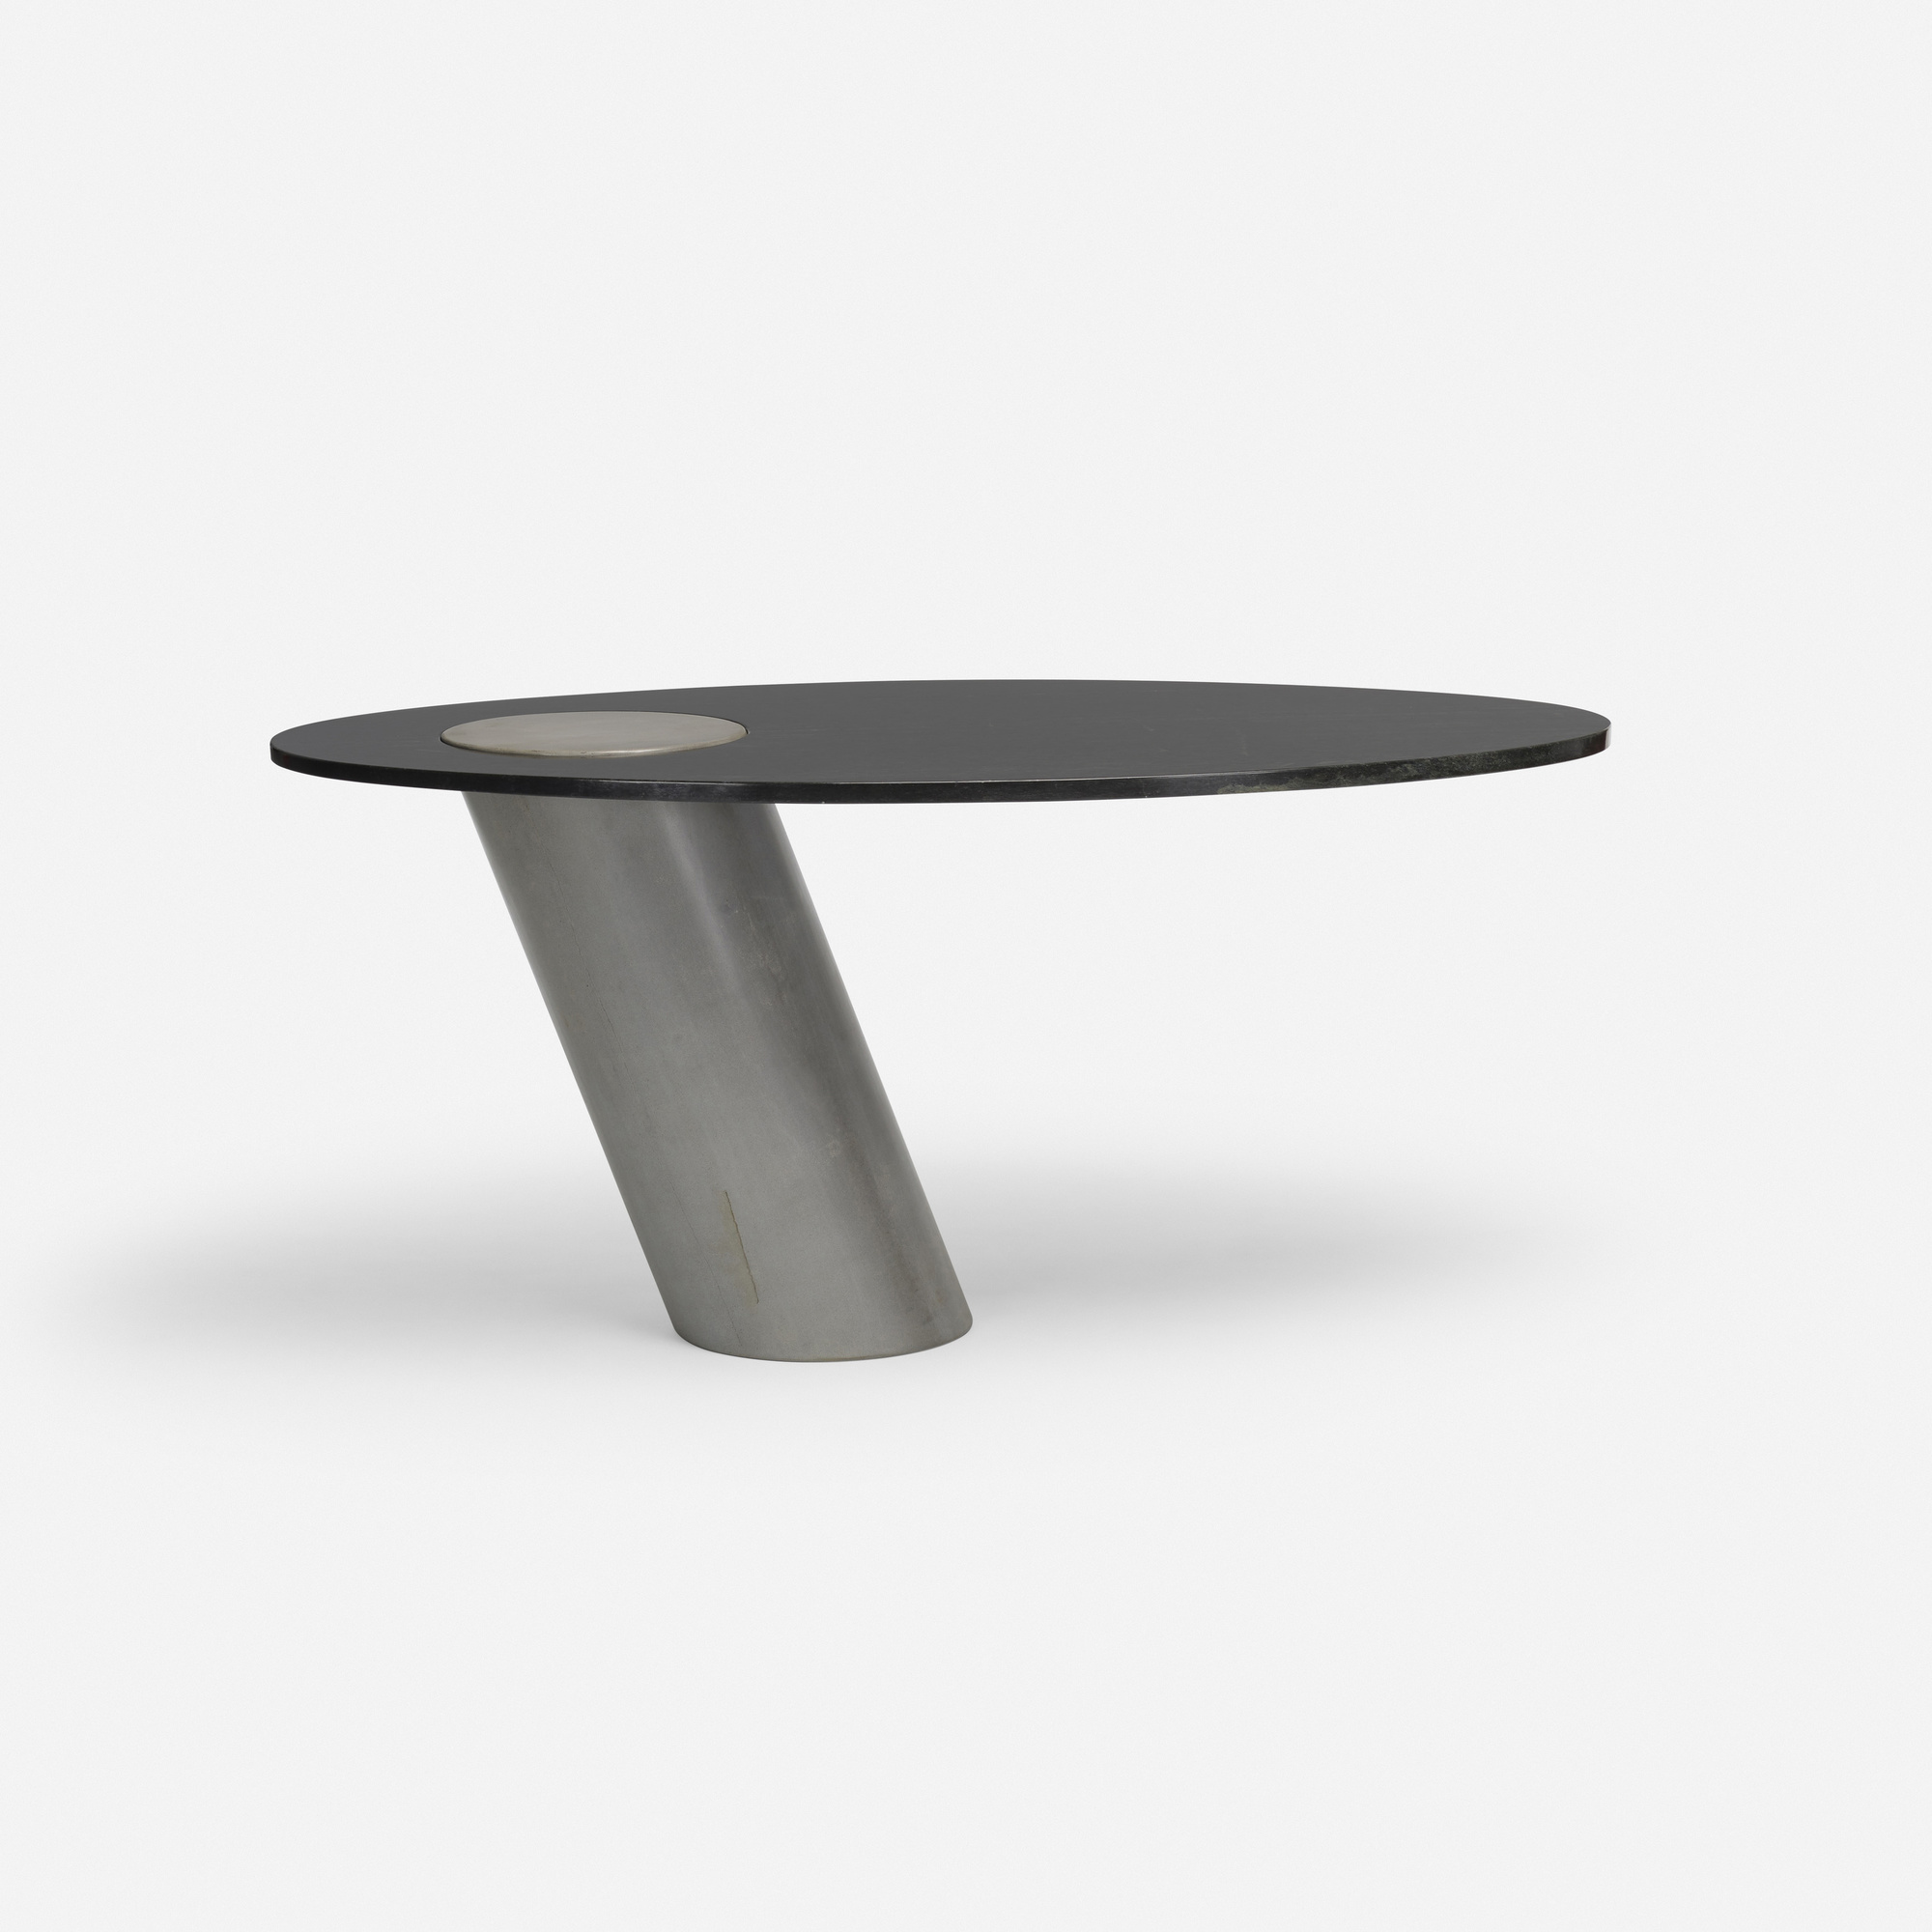 528: Angelo Mangiarotti / cantilevered table (1 of 2)